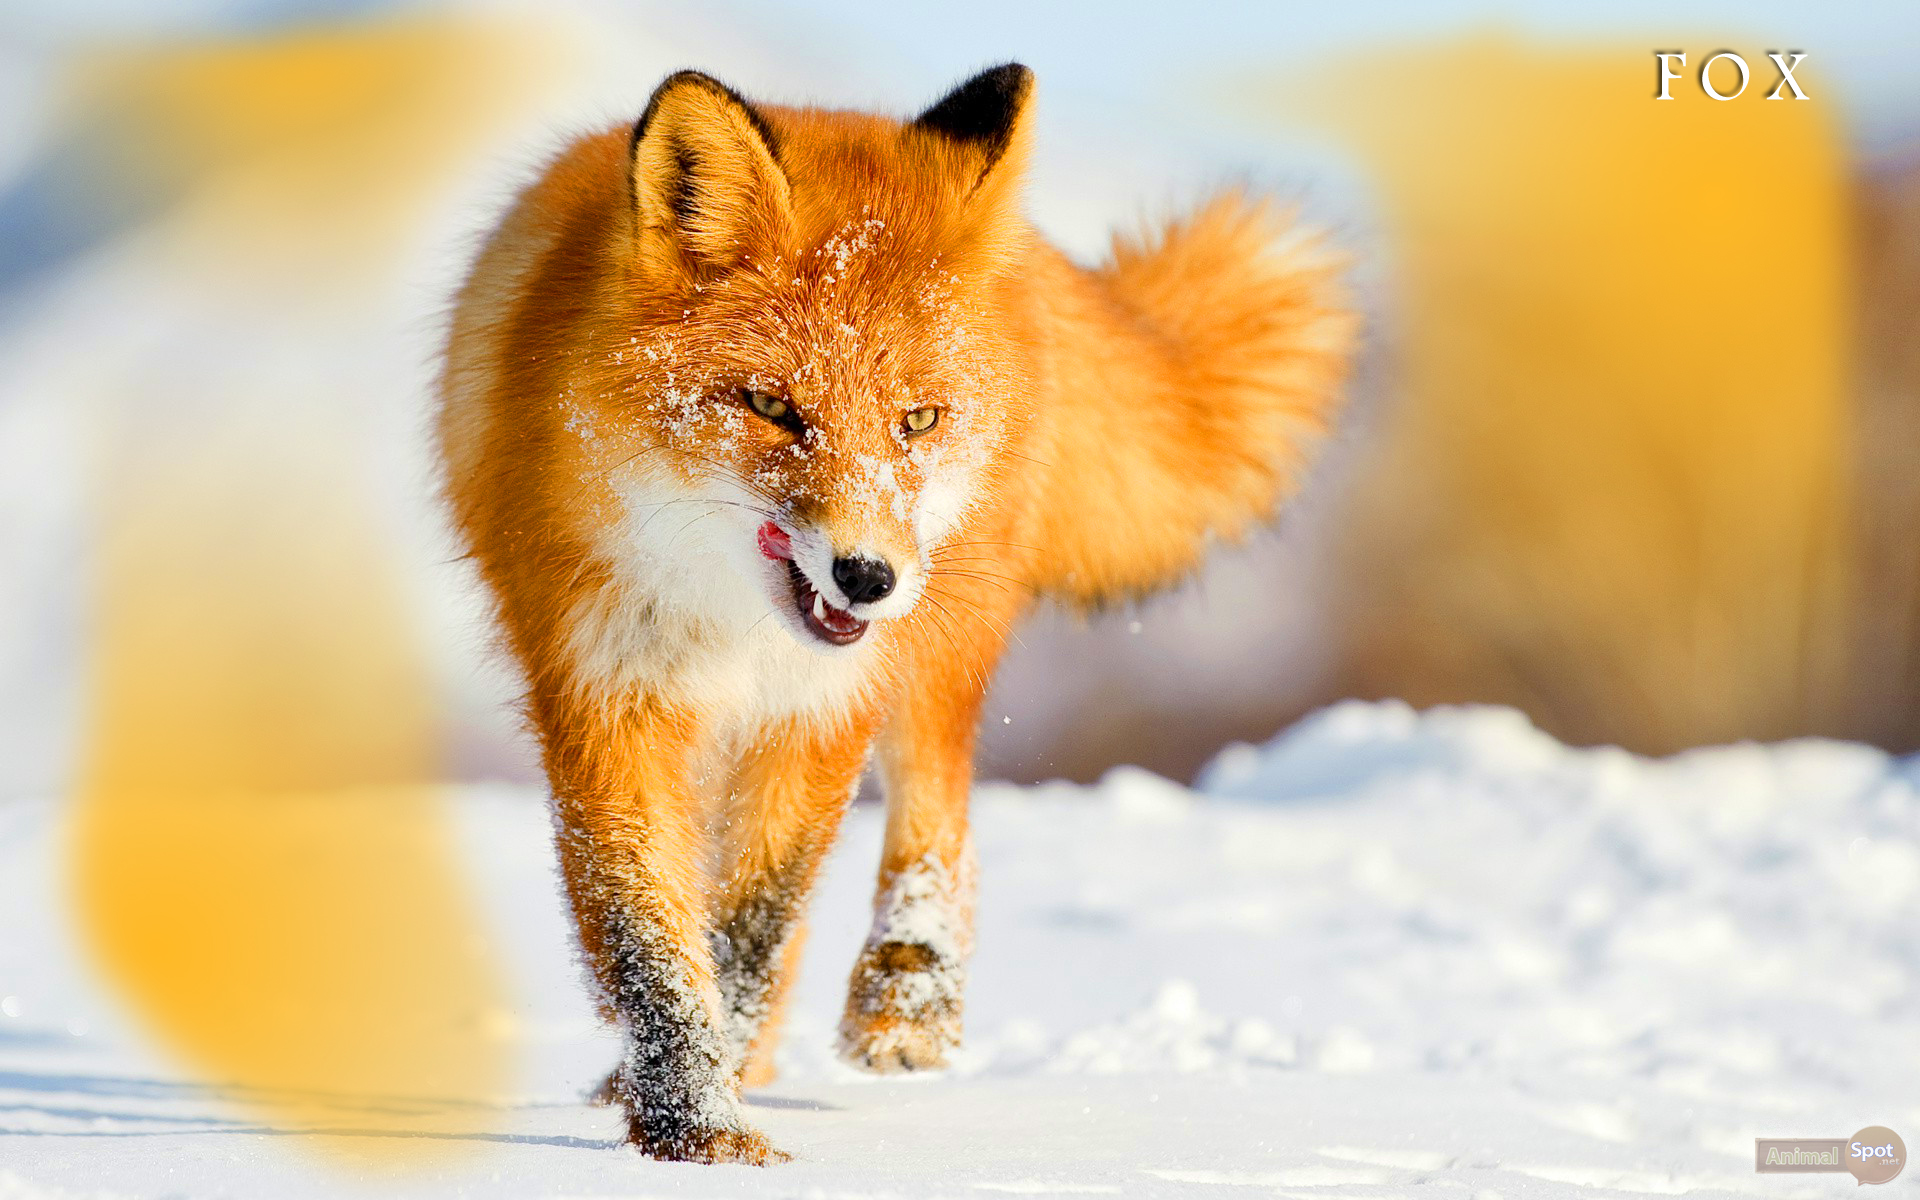 Fox Wallpapers on Animals And Their Habitats